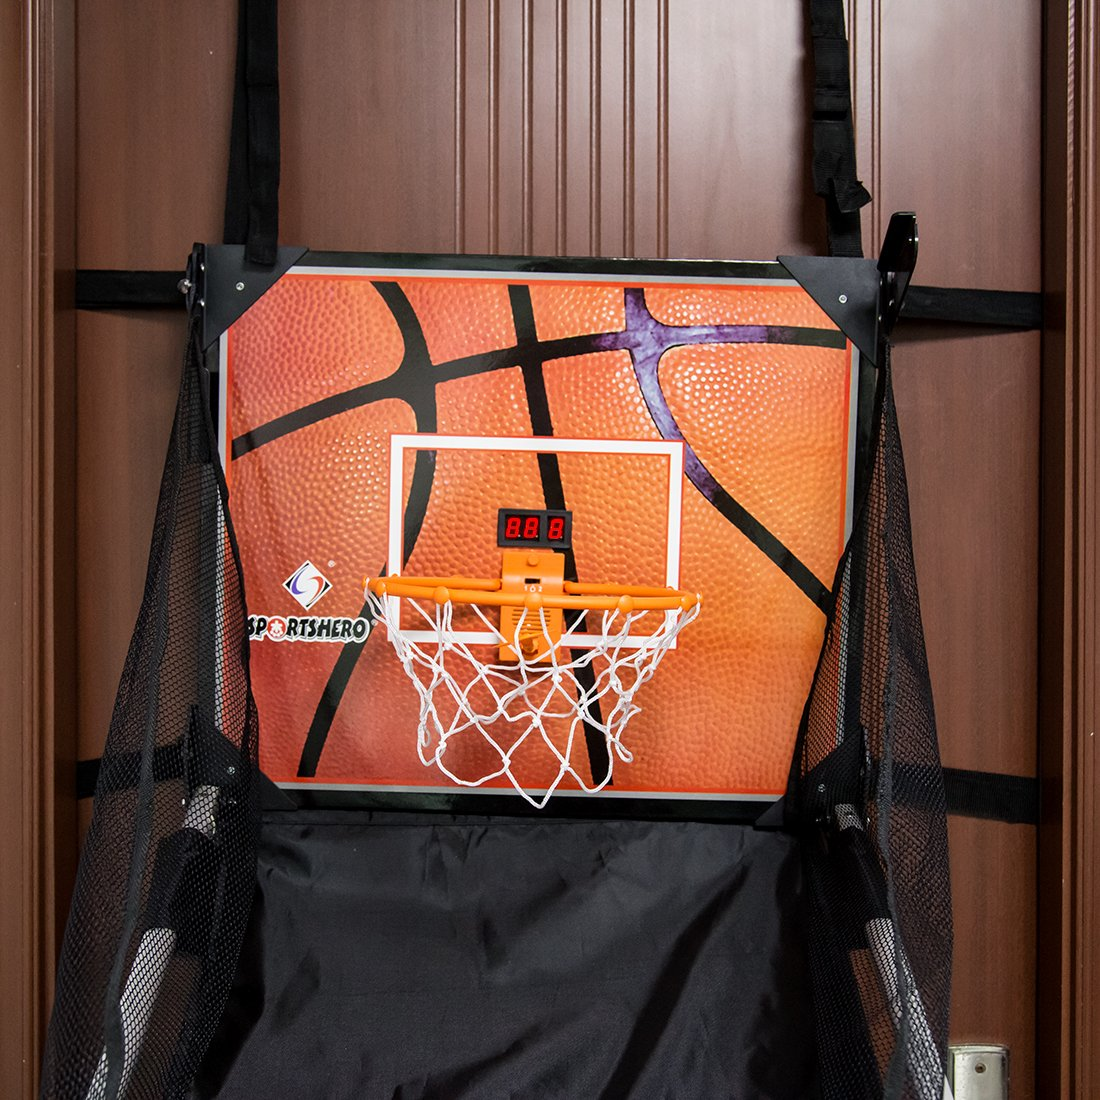 Basketball Shooting Machine PINCHUANGHUI Door Hanging Automatic Scoring Basketball Shooting Machine Foldable Shooting Hoop - Main Black by PINCHUANGHUI (Image #5)